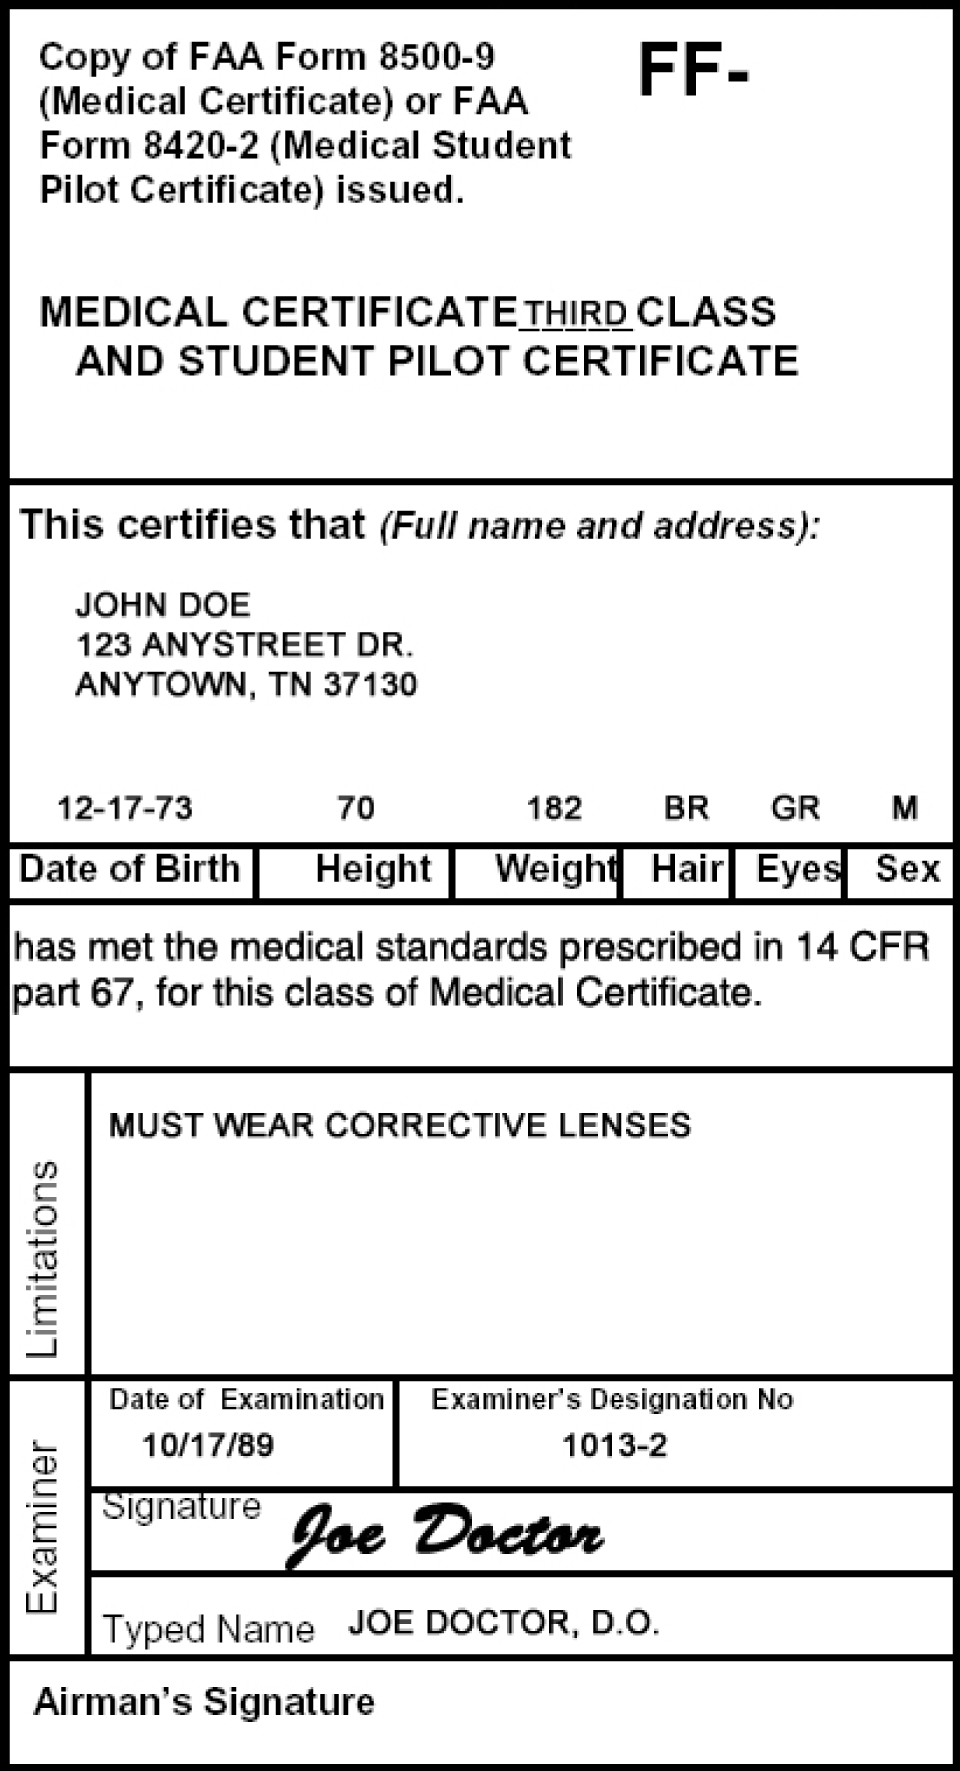 A third-class medical certificate/student pilot certificate.